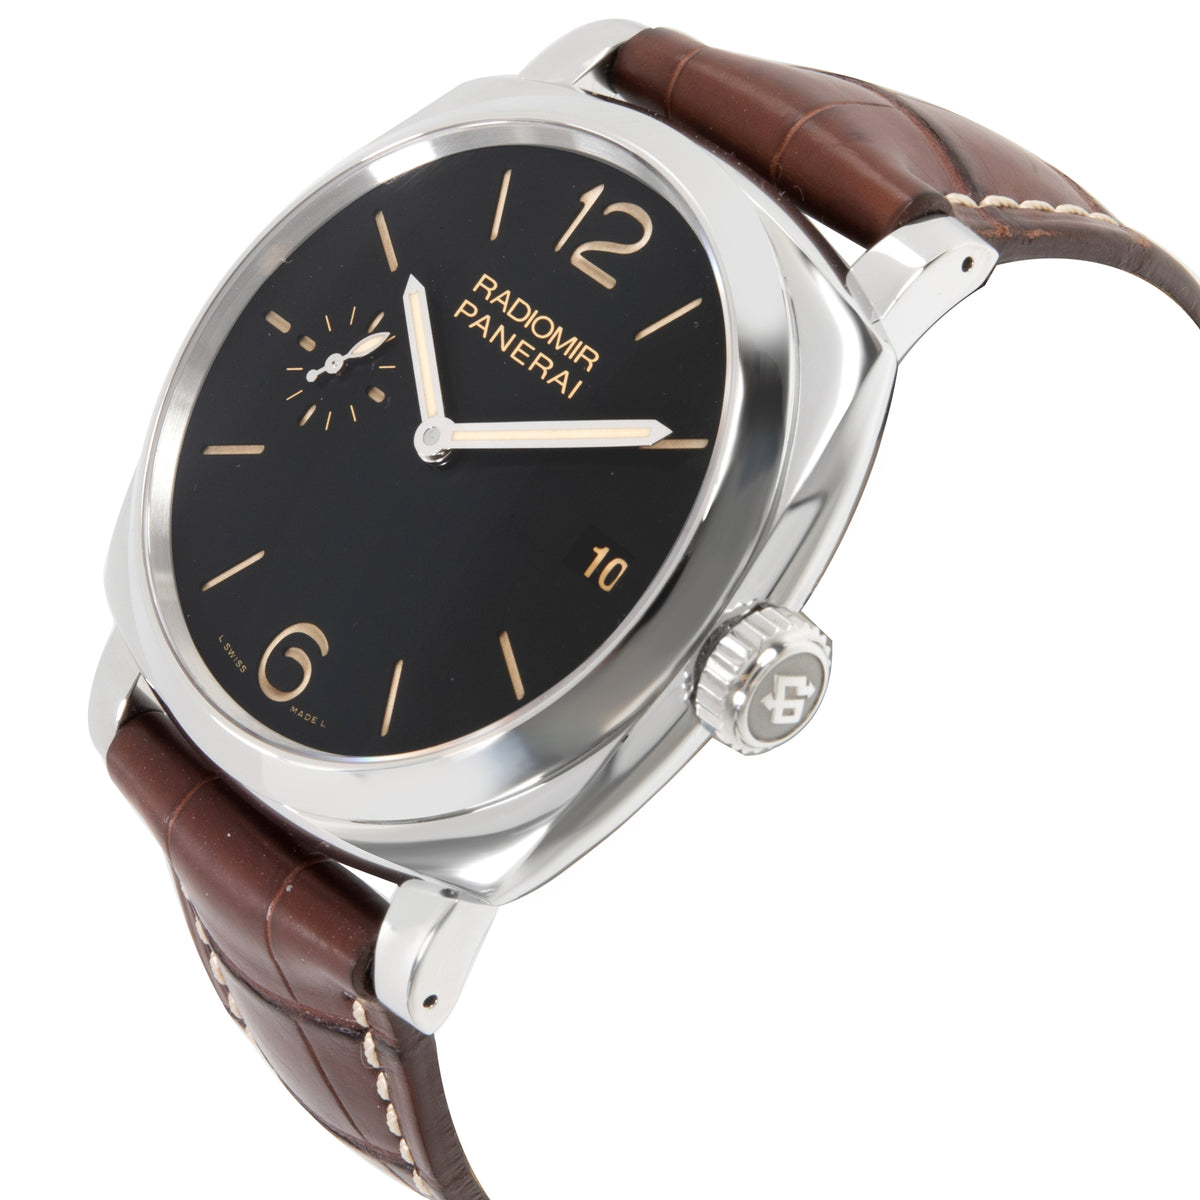 Panerai Radiomir 1940 3 Day PAM00514 Men's Watch in  Stainless Steel